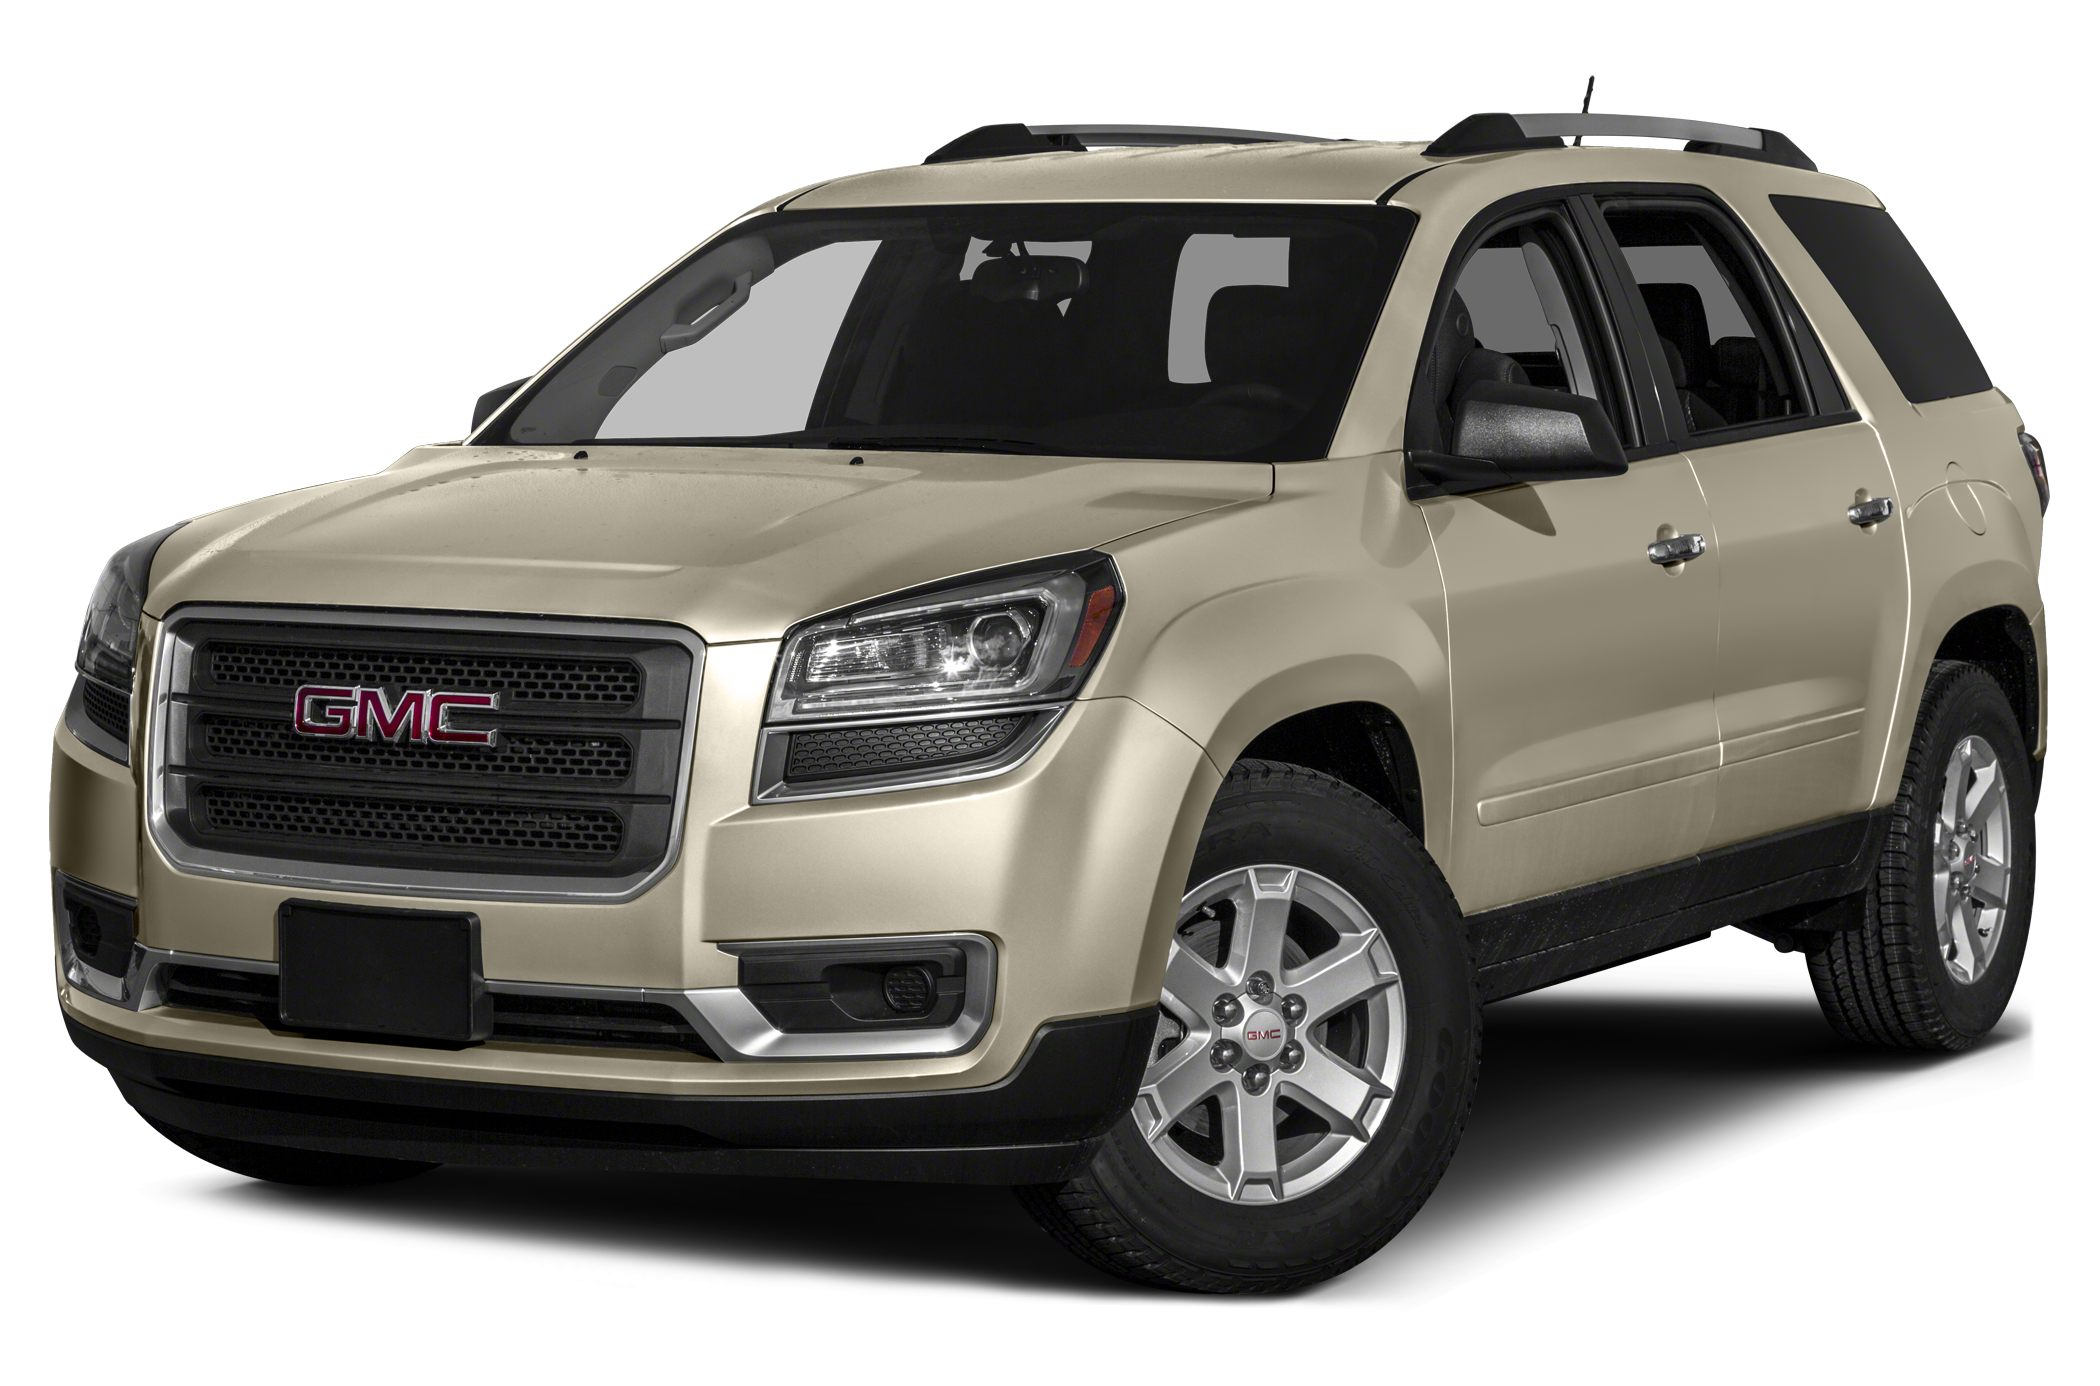 2013 GMC Acadia SLE-2 SUV for sale in Paris for $26,987 with 31,250 miles.